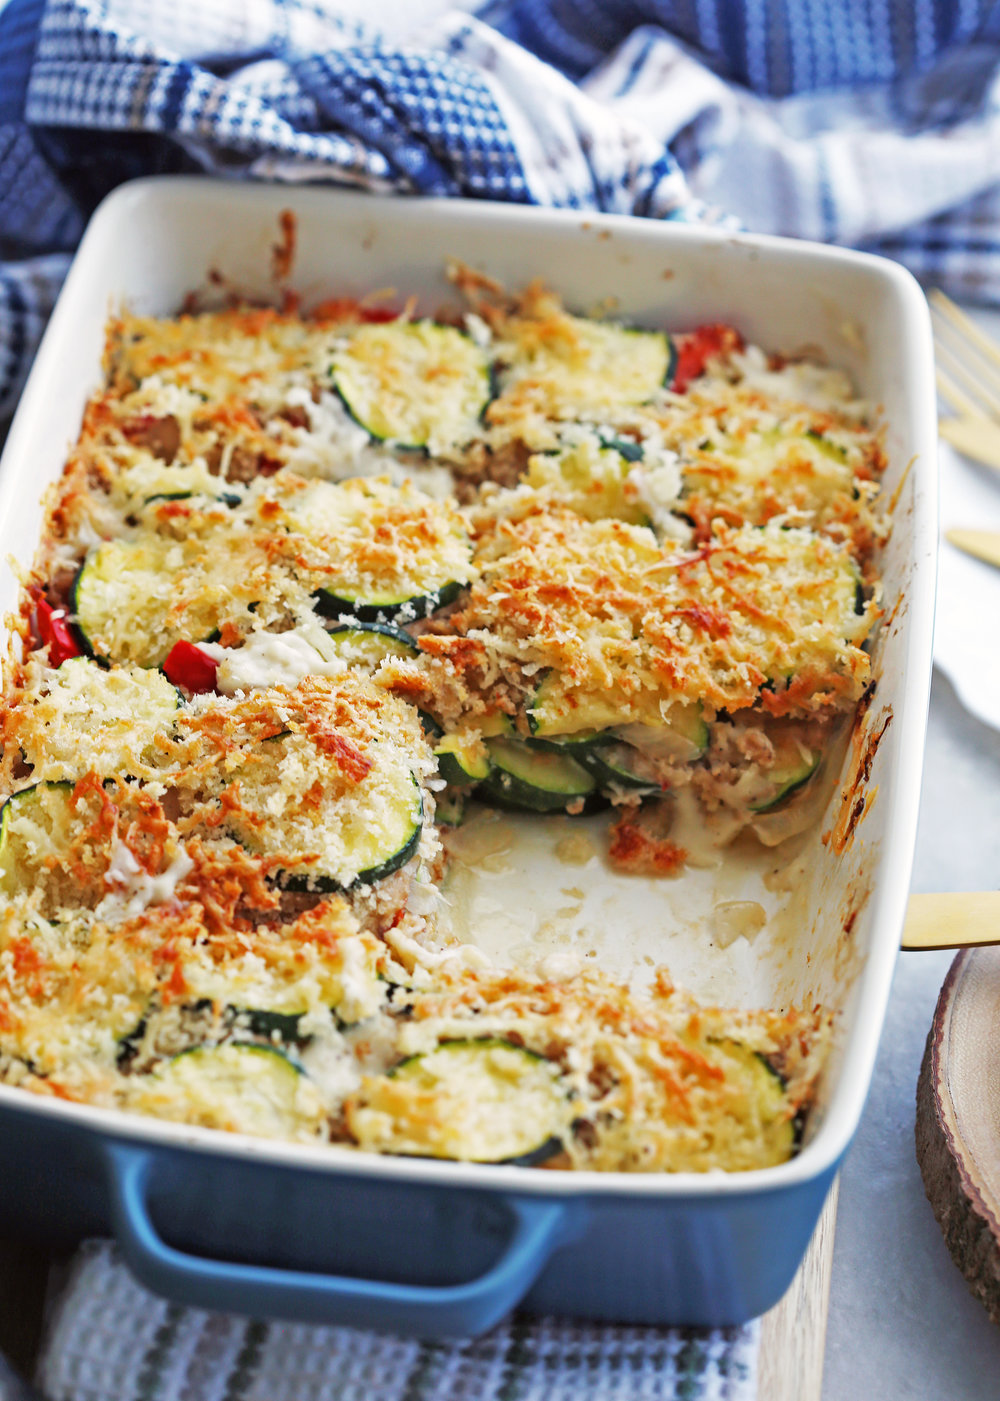 Zucchini Gratin with Gruyère and Panko Breadcrumbs in a blue rectangular casserole dish with one piece of gratin removed.